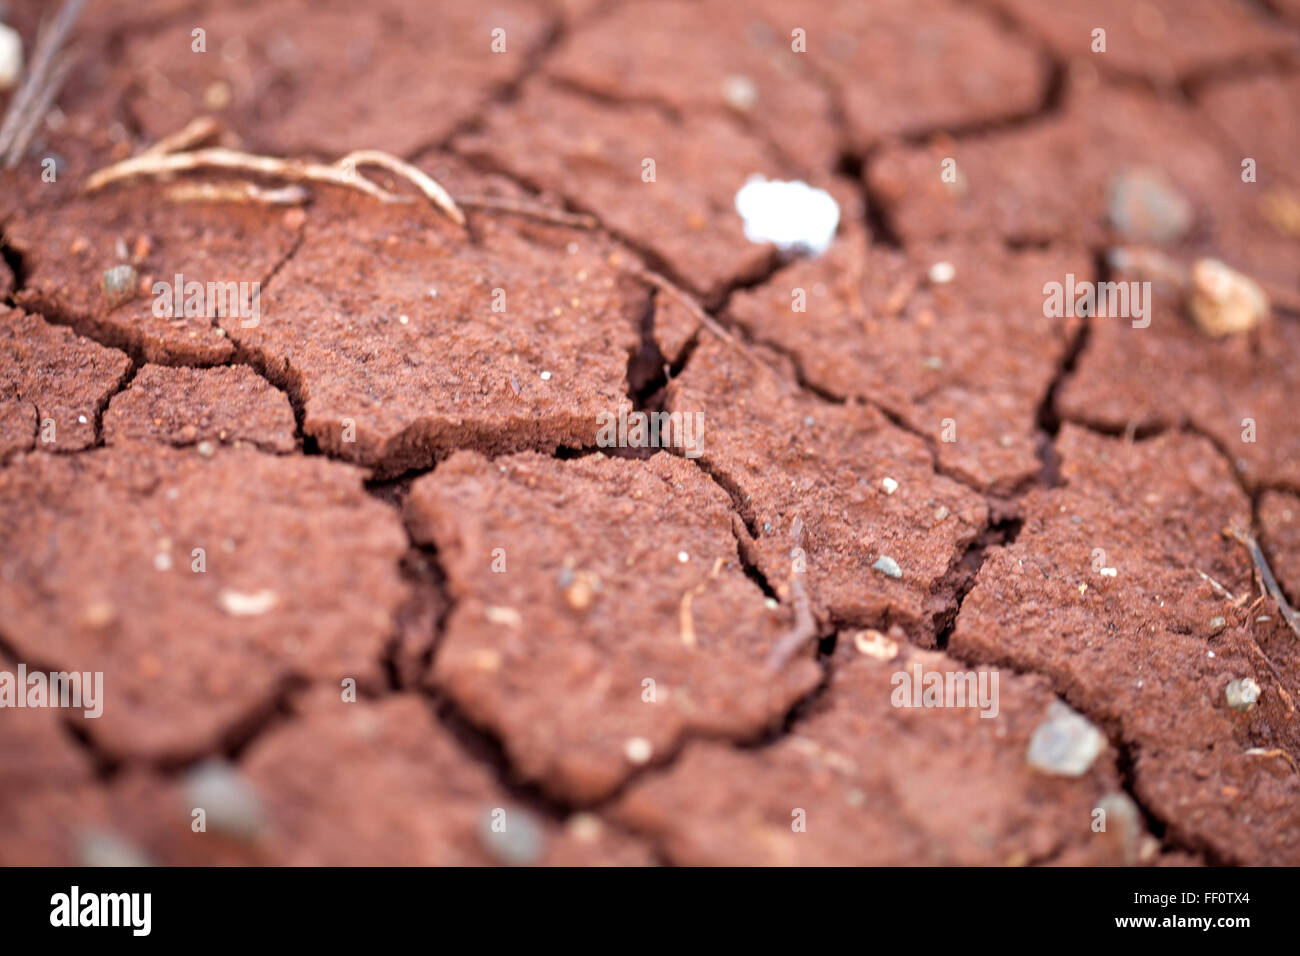 A close up of dry red cracked earth. - Stock Image